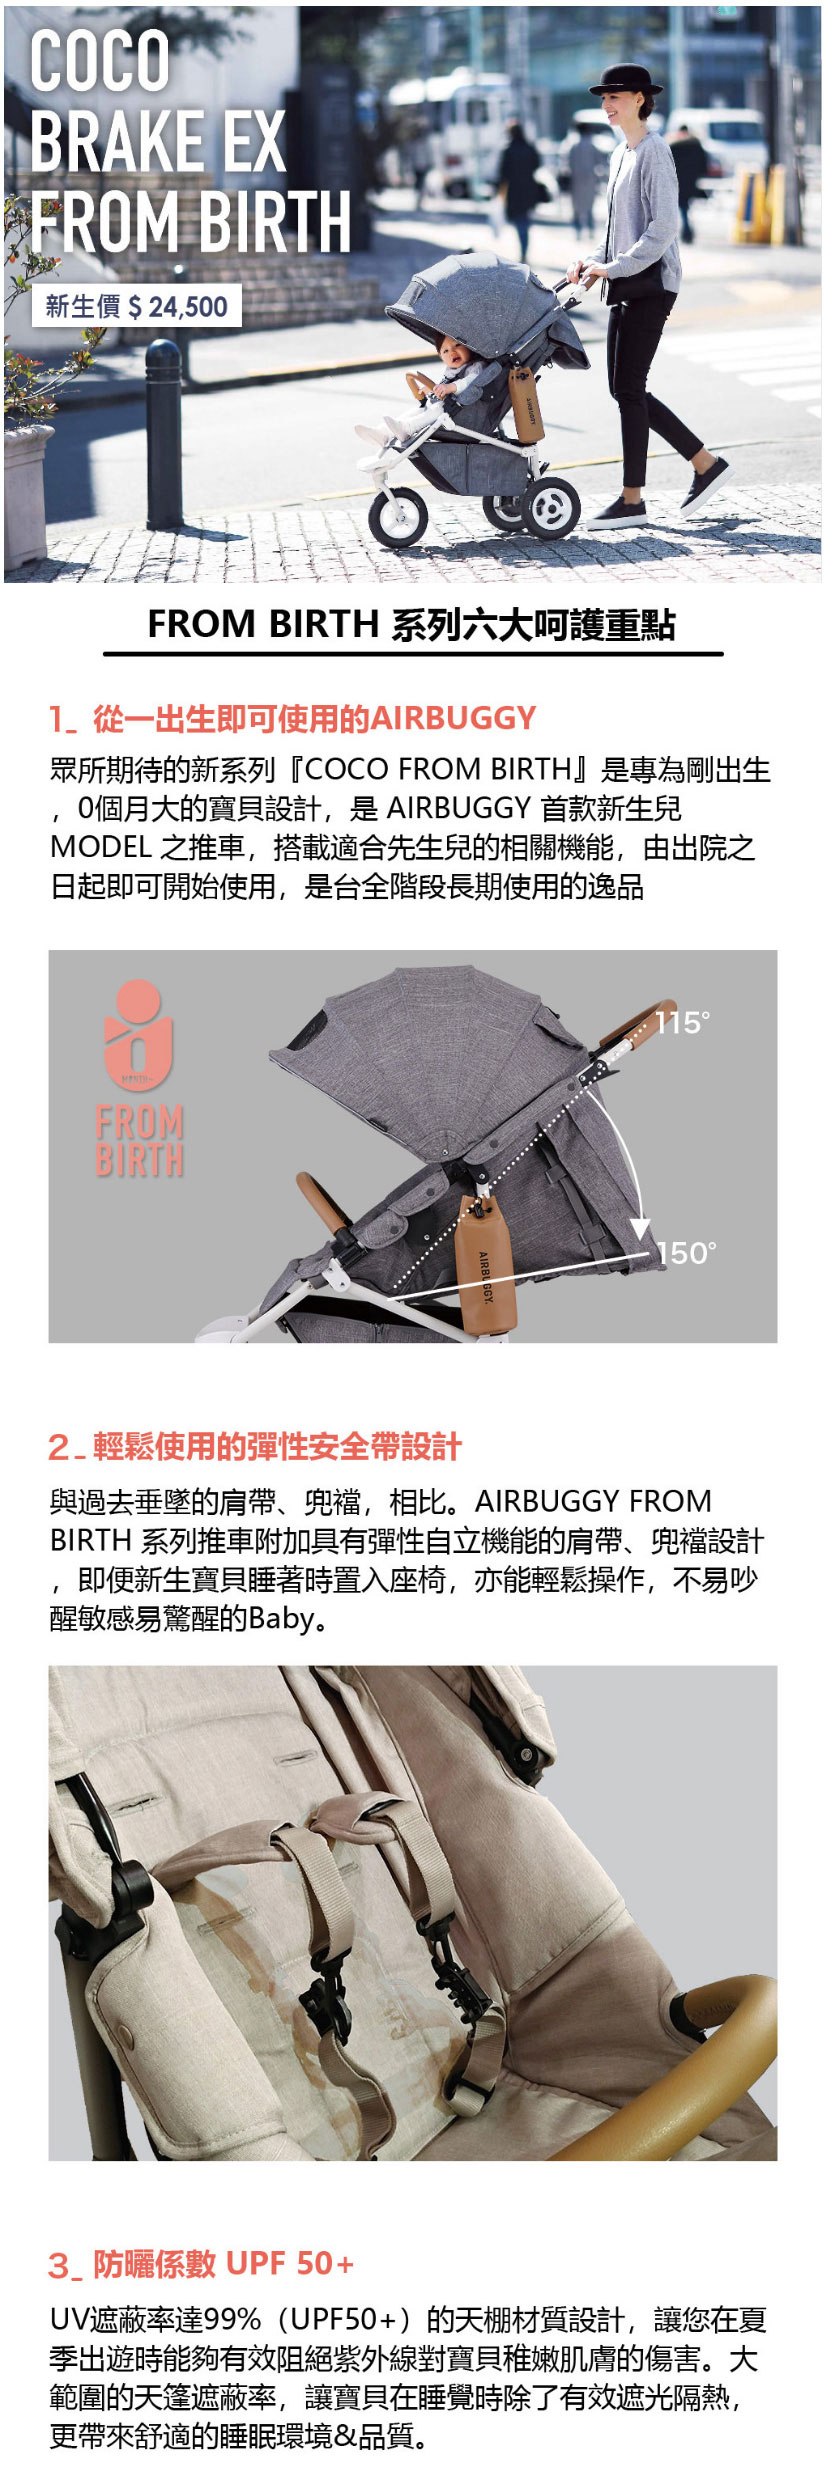 Airbuggy-COCO-BRAKE-EX-FROM-BIRTH-info01